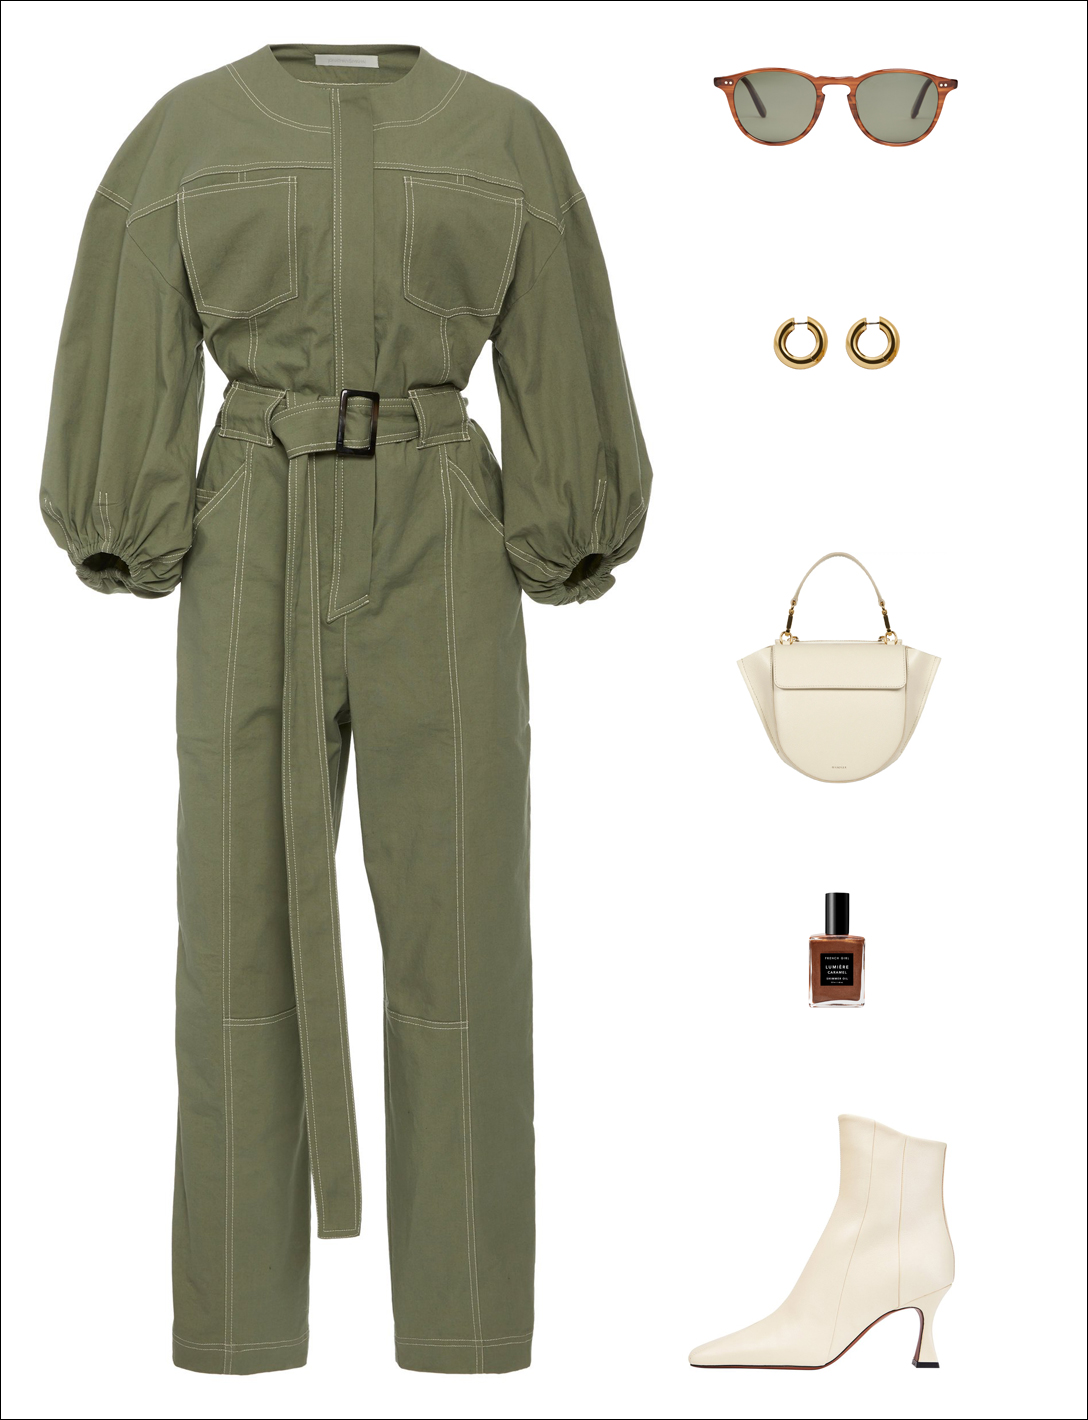 How to Wear a Statement Jumpsuit for Fall — Green Puff-Sleeve Jumpsuit, Hoop Earrings, White Mini Bag, and White Ankle Boots